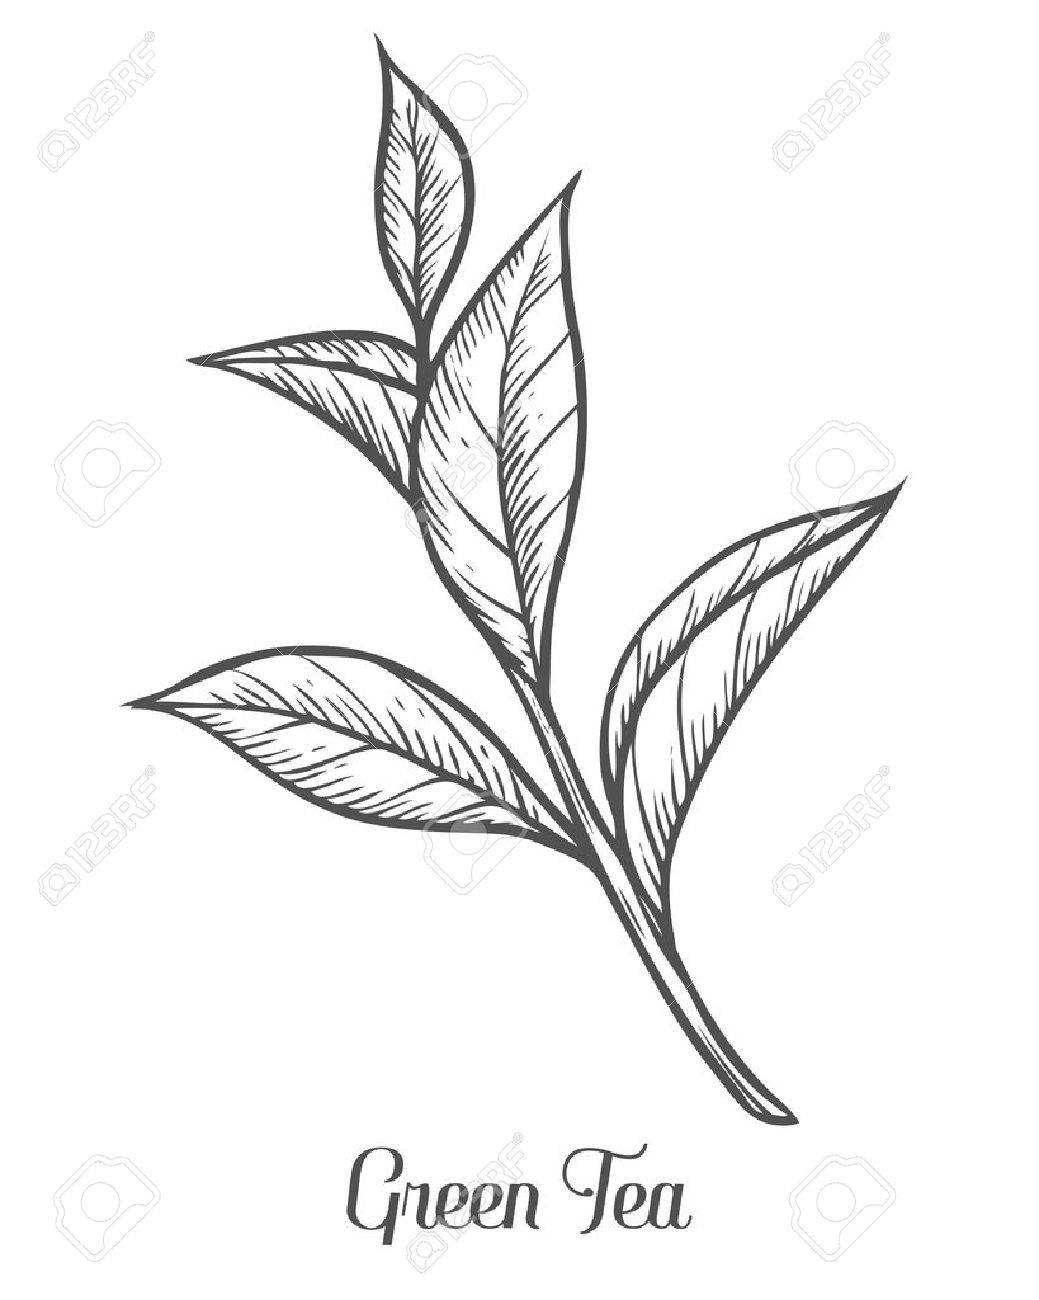 Green tea plant, leaf. Hand drawn sketch vector illustration. Floral branch organic lineart. Chinese Green tea, hot drink. Black leaf on white background. - 68335593